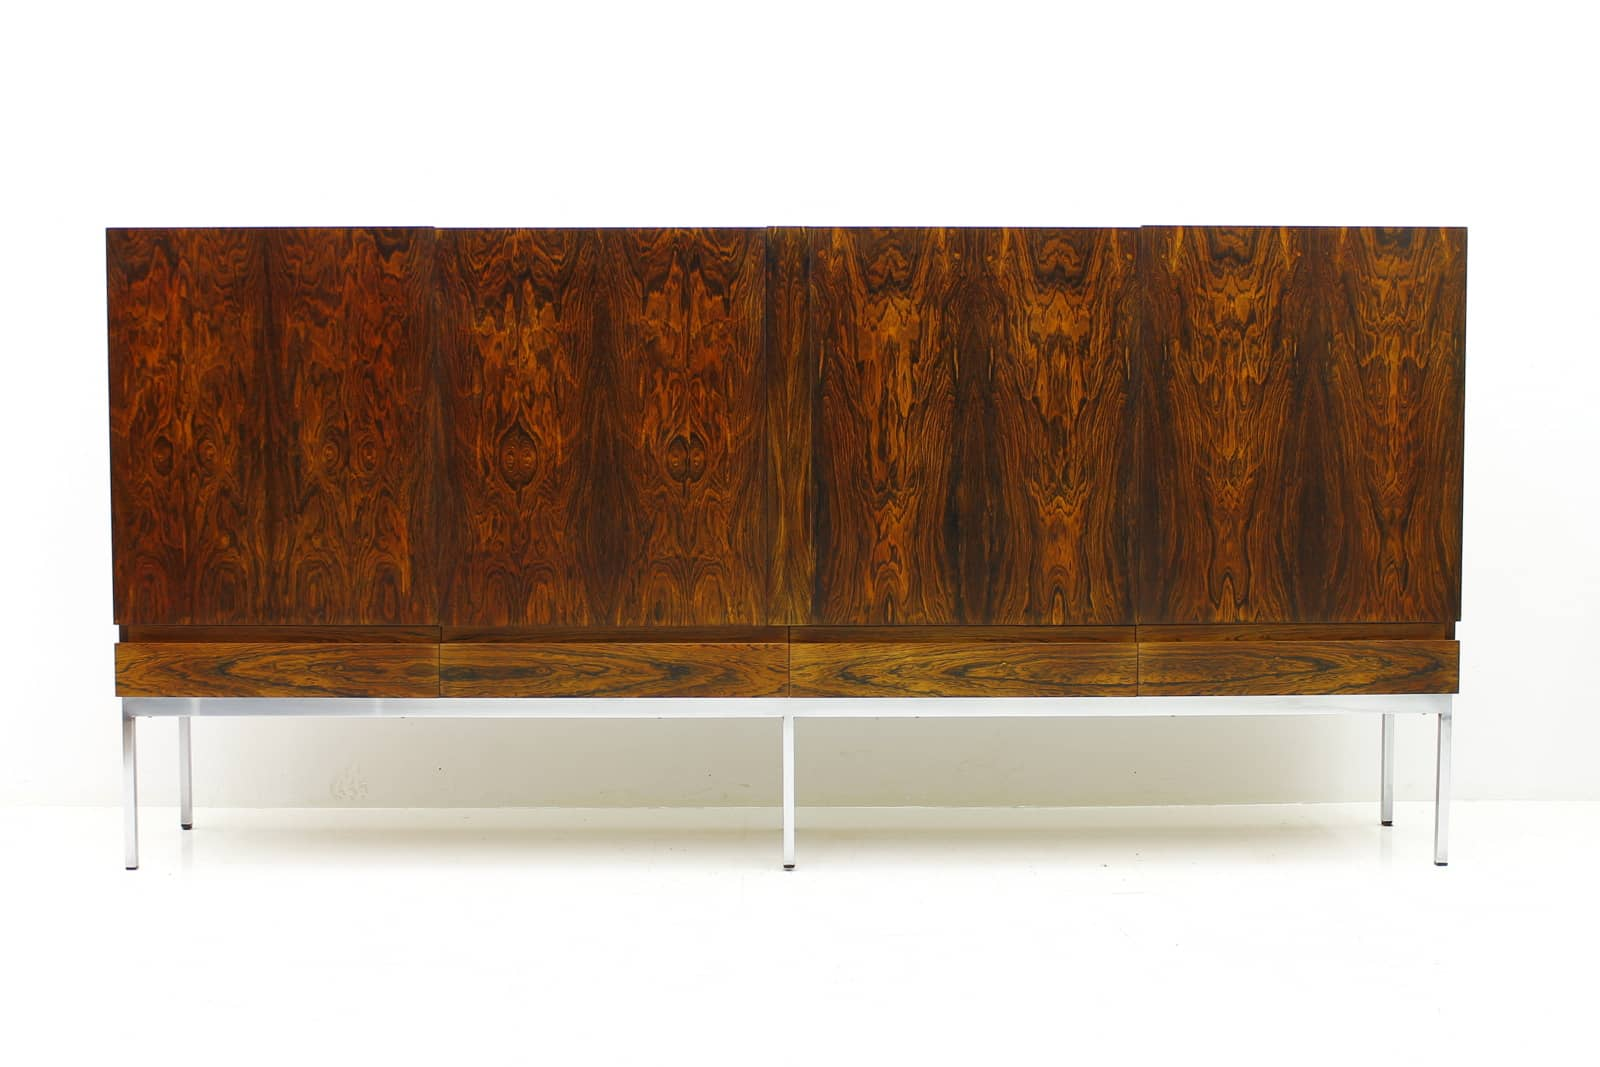 Rosewood Sideboard by Dieter Wäckerlin B60, Behr 1958